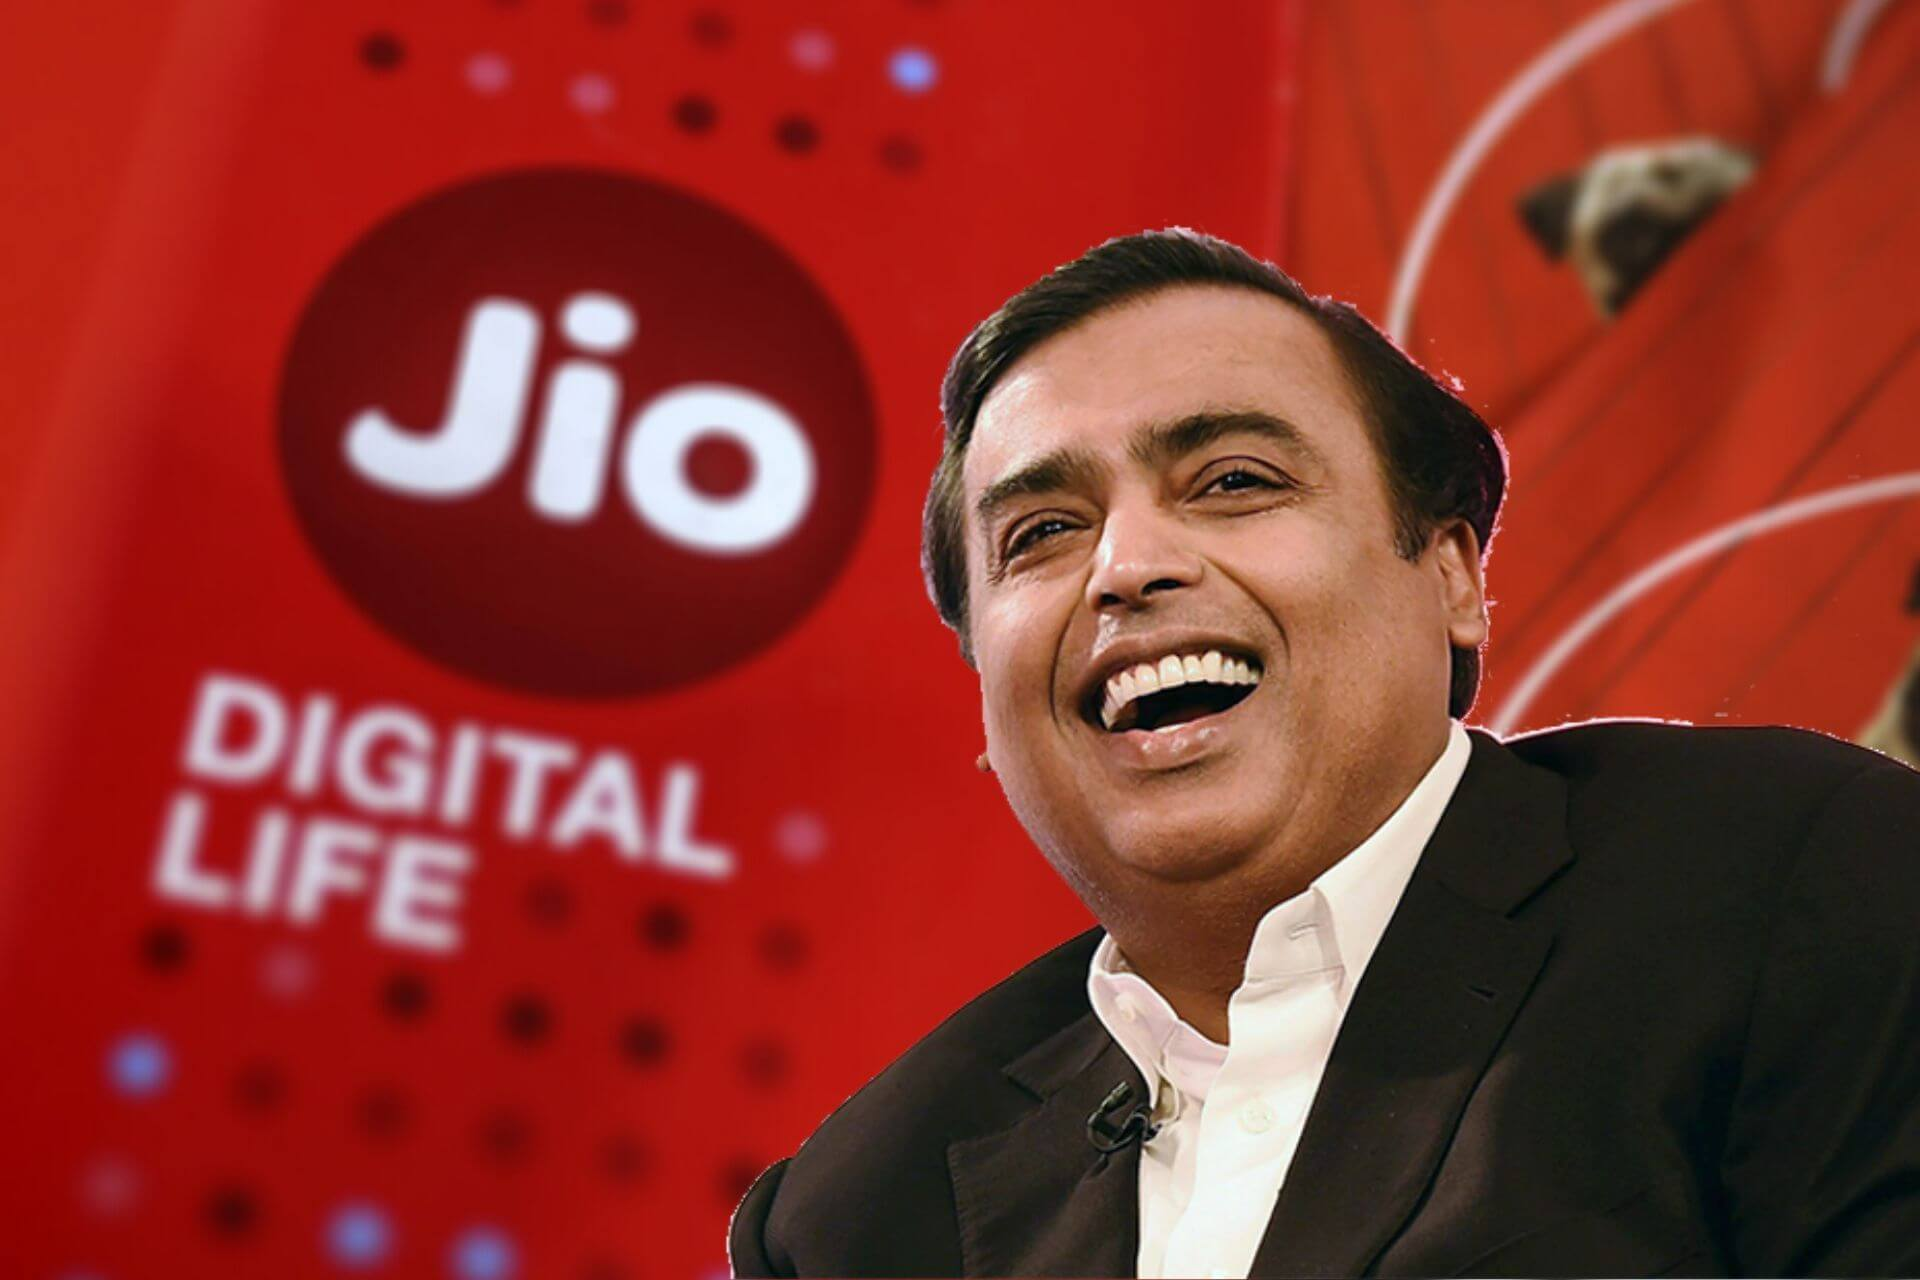 Reliance Jio Stake Sales - Ambani's Quest to become DEBT-FREE cover